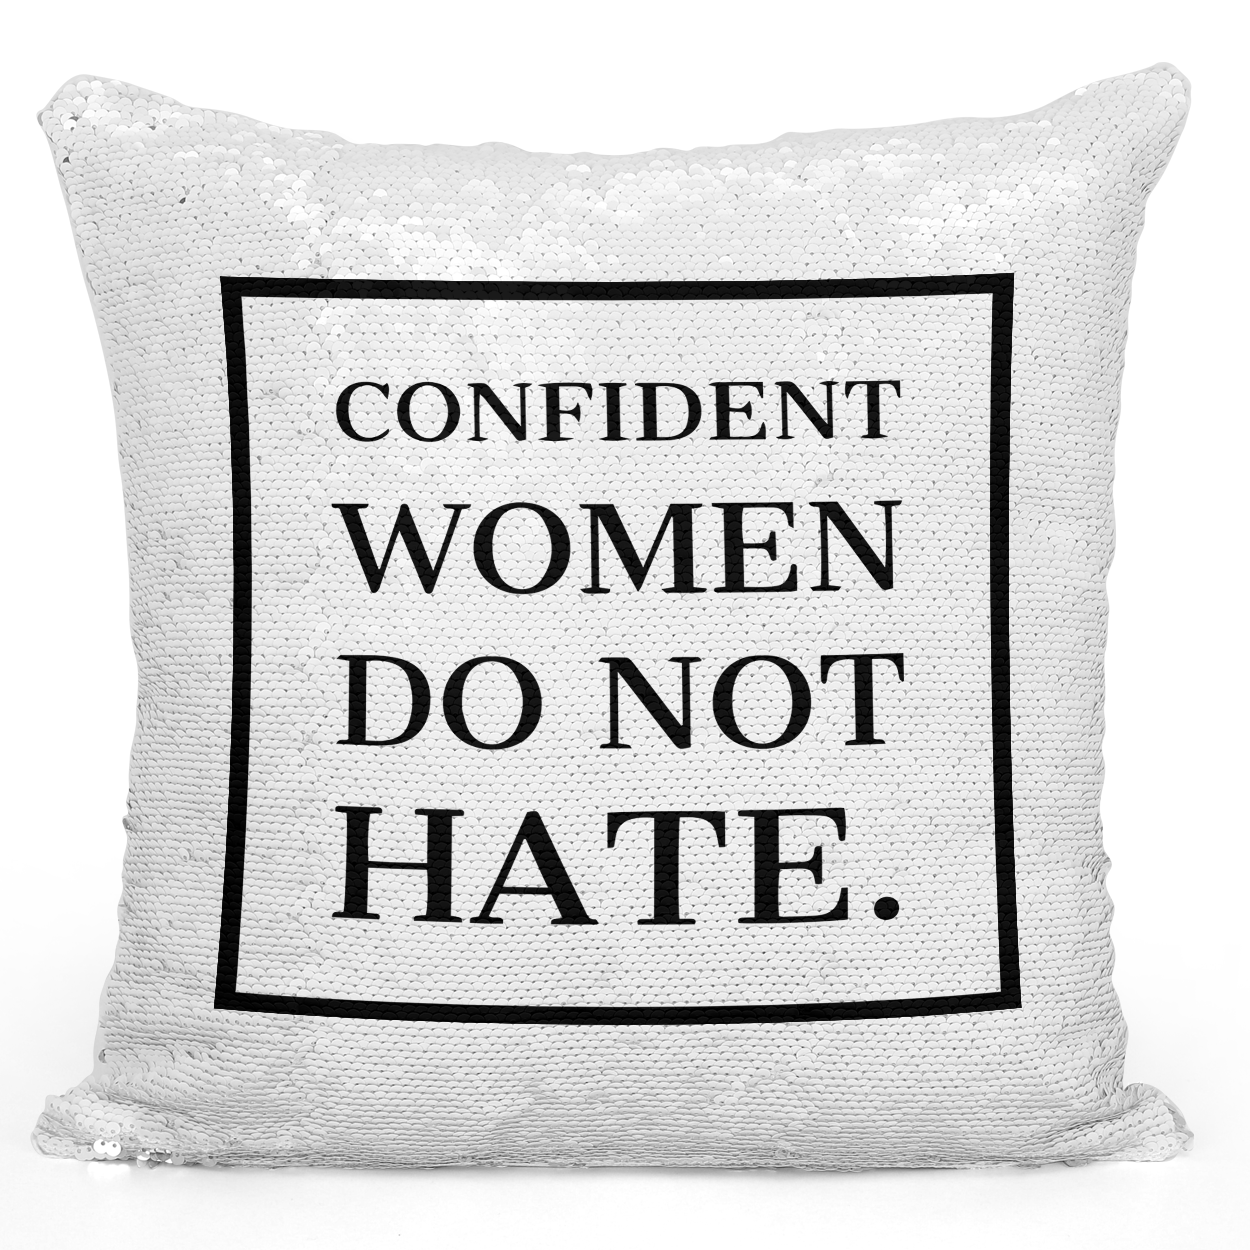 16x16 inch Sequin Throw Pillow Magic Flip Pillow Confident Women Do Not Hate Girls Women Quote Strong Statement Loud Universe